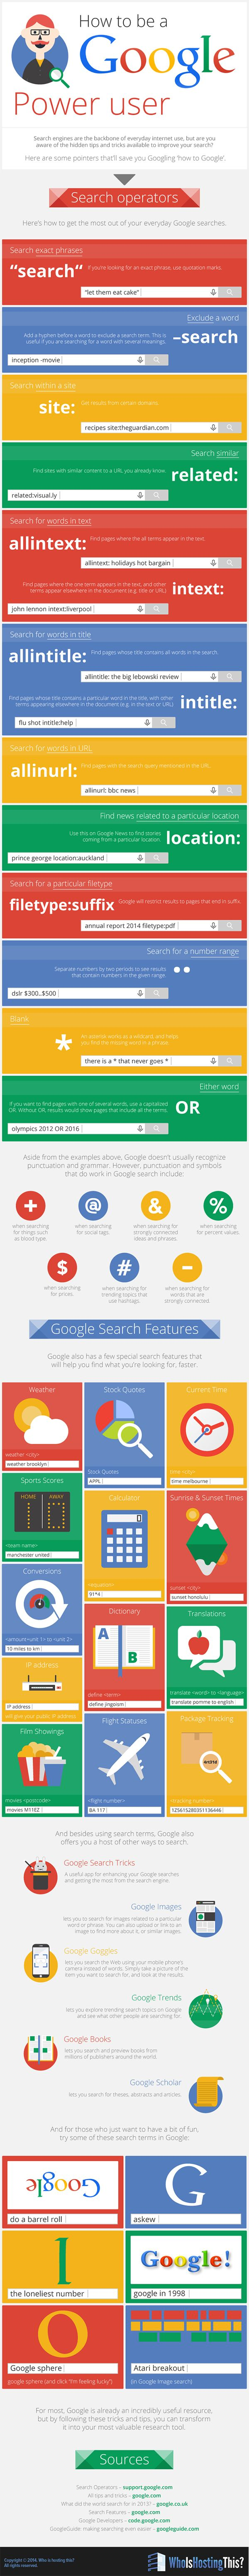 46-hidden-tips-and-tricks-to-use-google-search-like-a-boss.jpg (600×6198)